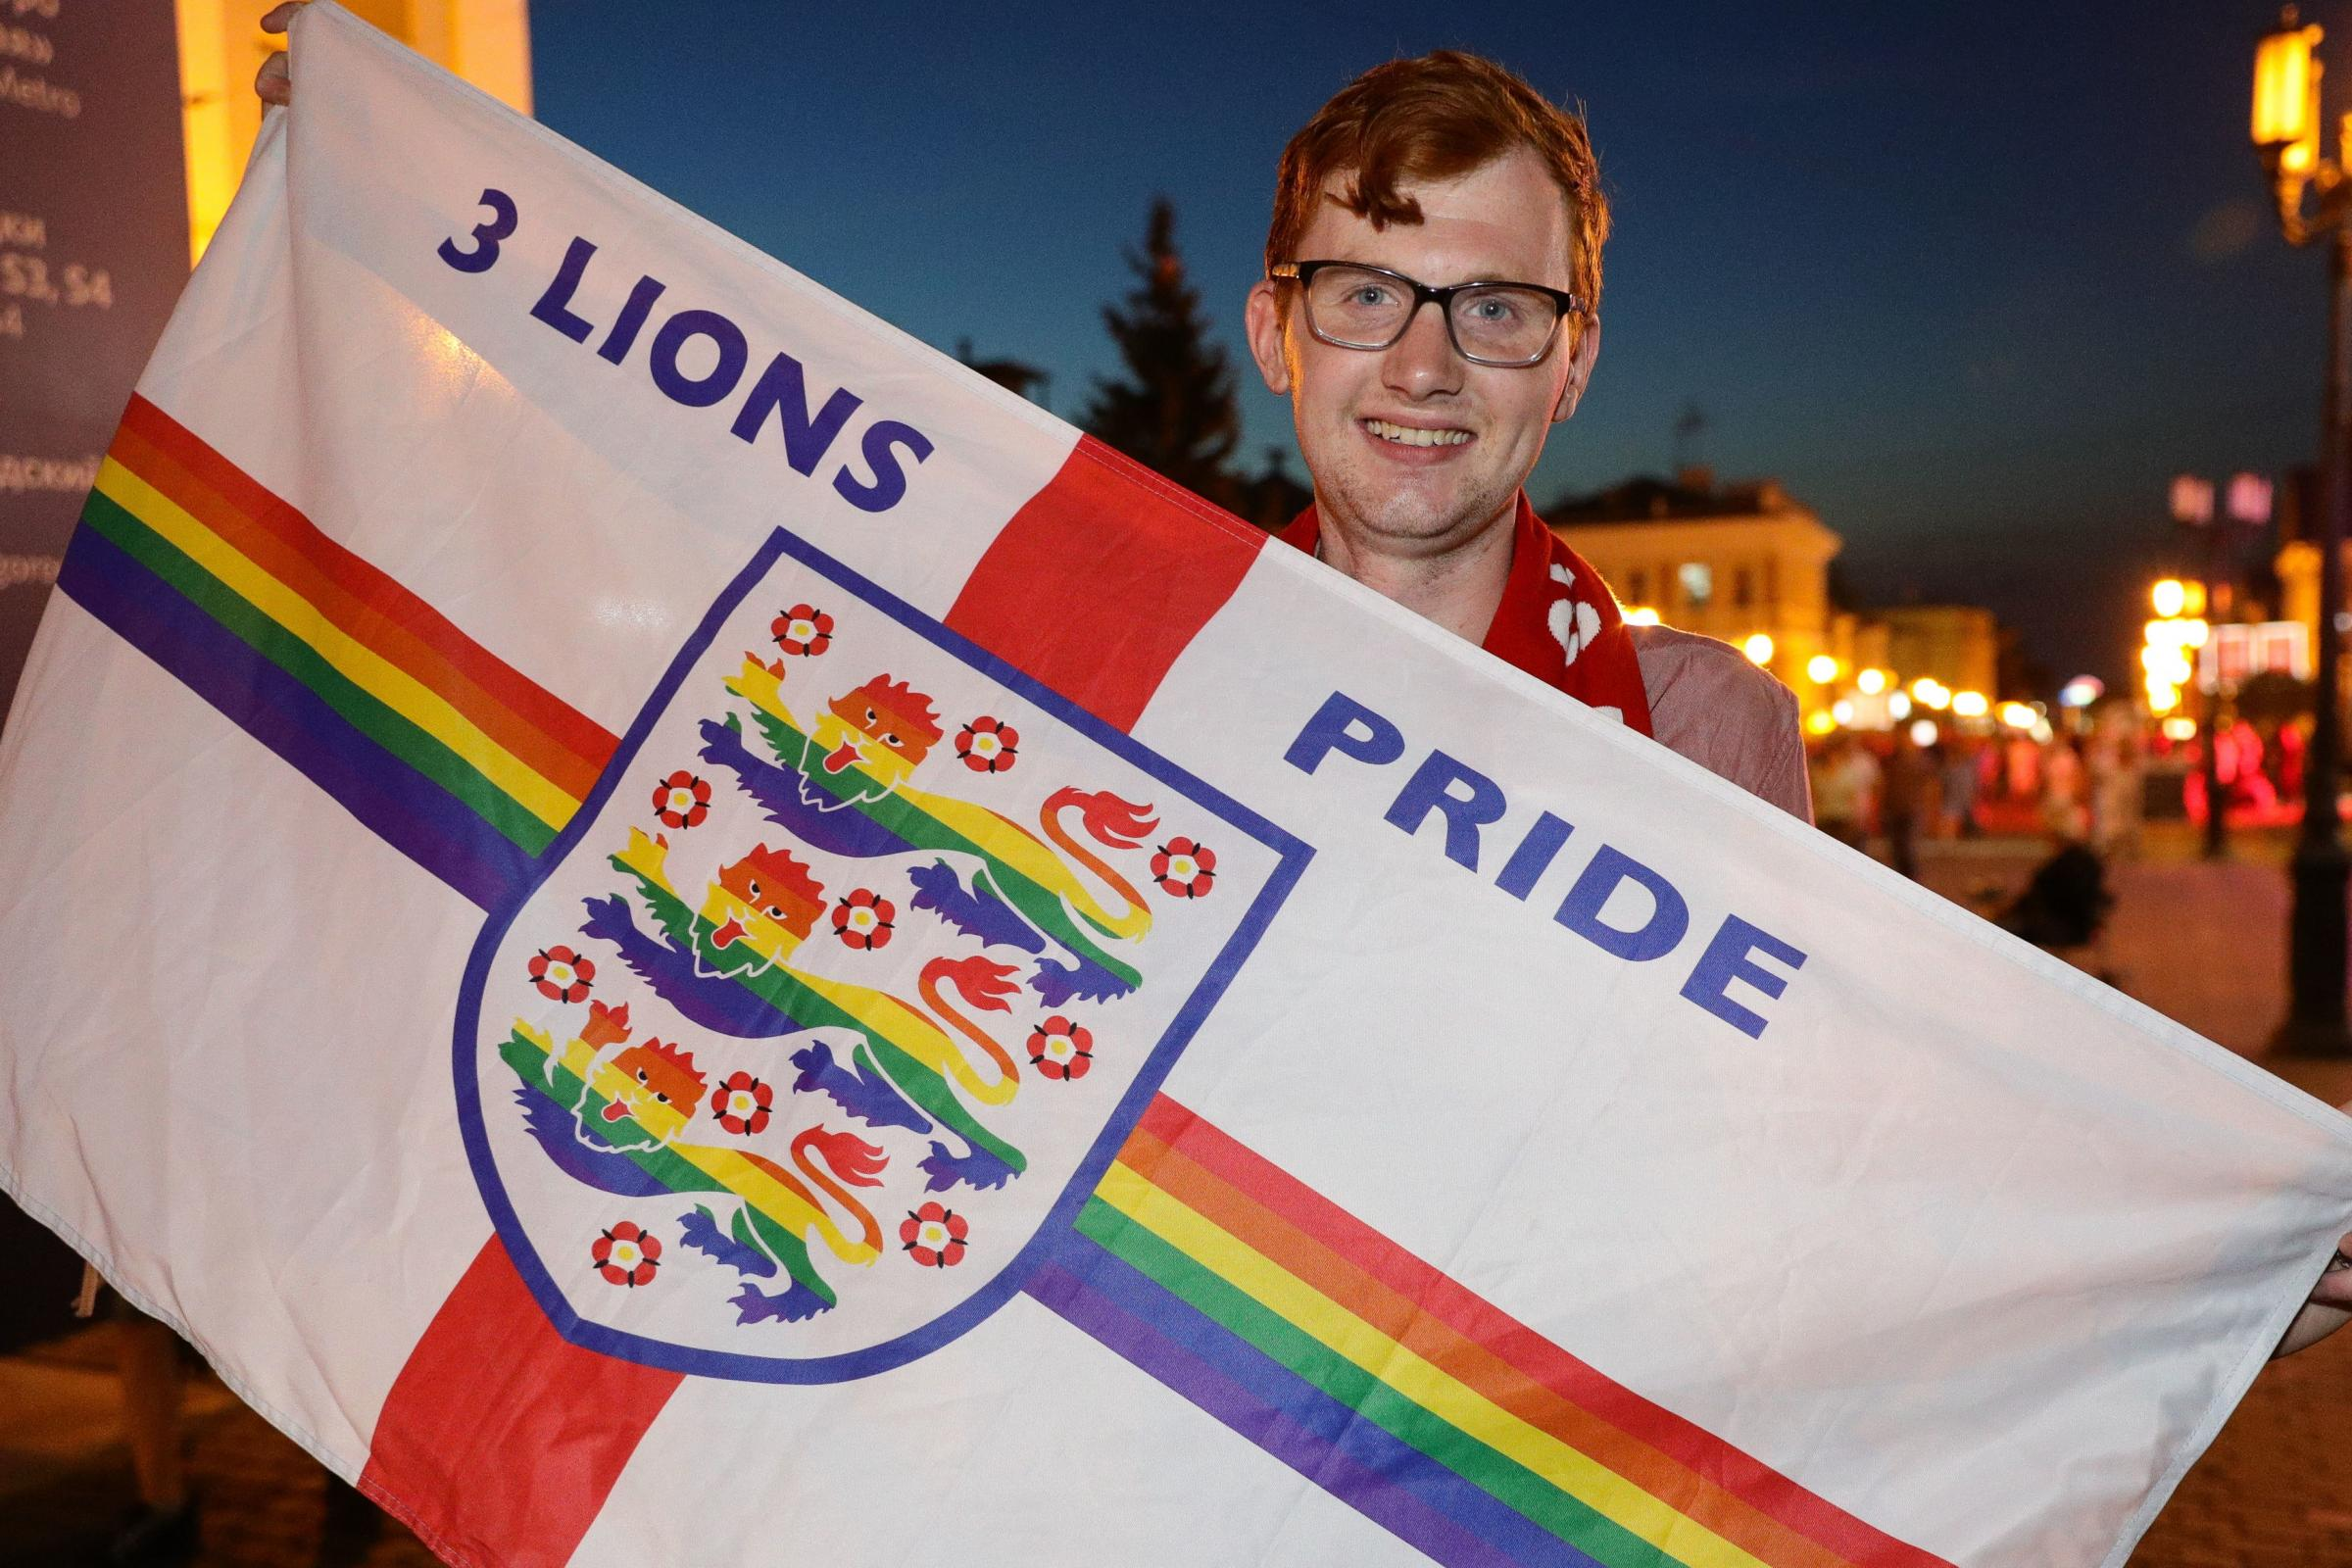 Joe White holds his Three Lions Pride flag in the central street of Nizhny Novgorod, Russia